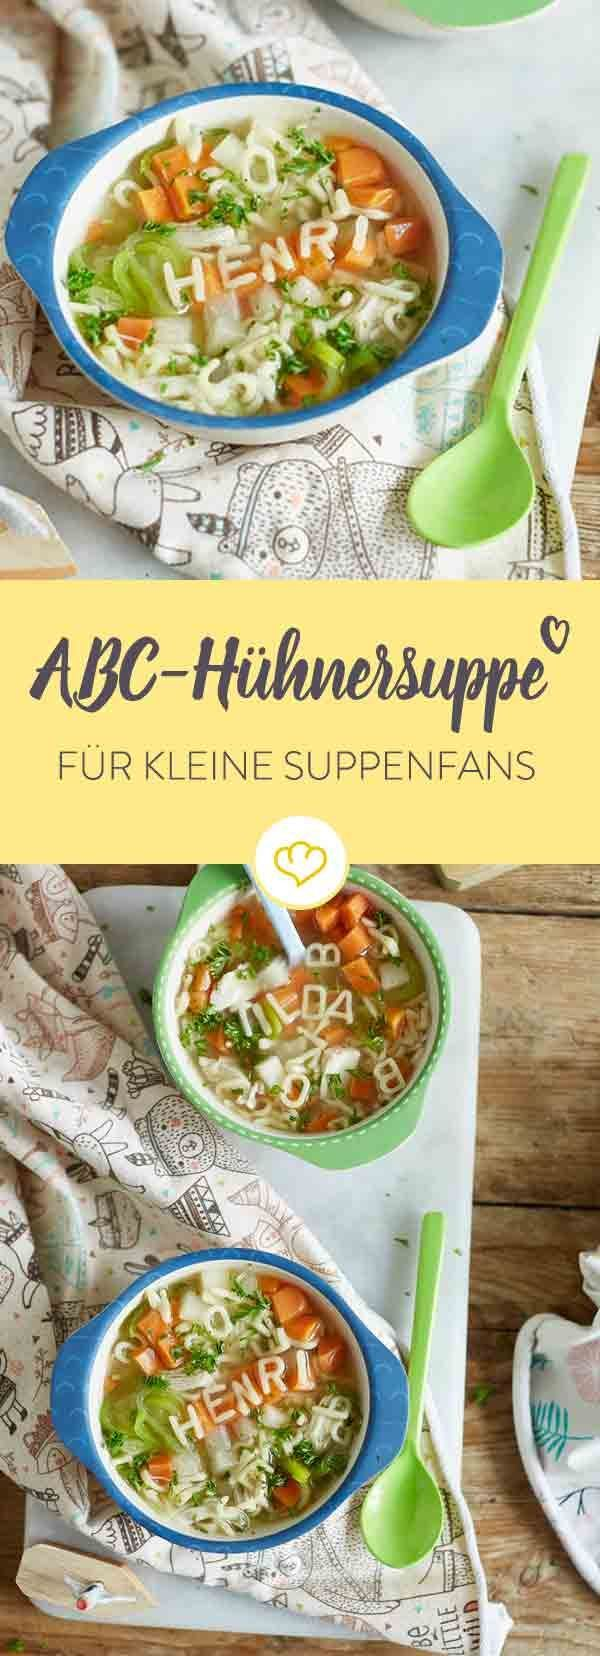 schnelle h hnersuppe f r kinder rezept european recipe. Black Bedroom Furniture Sets. Home Design Ideas